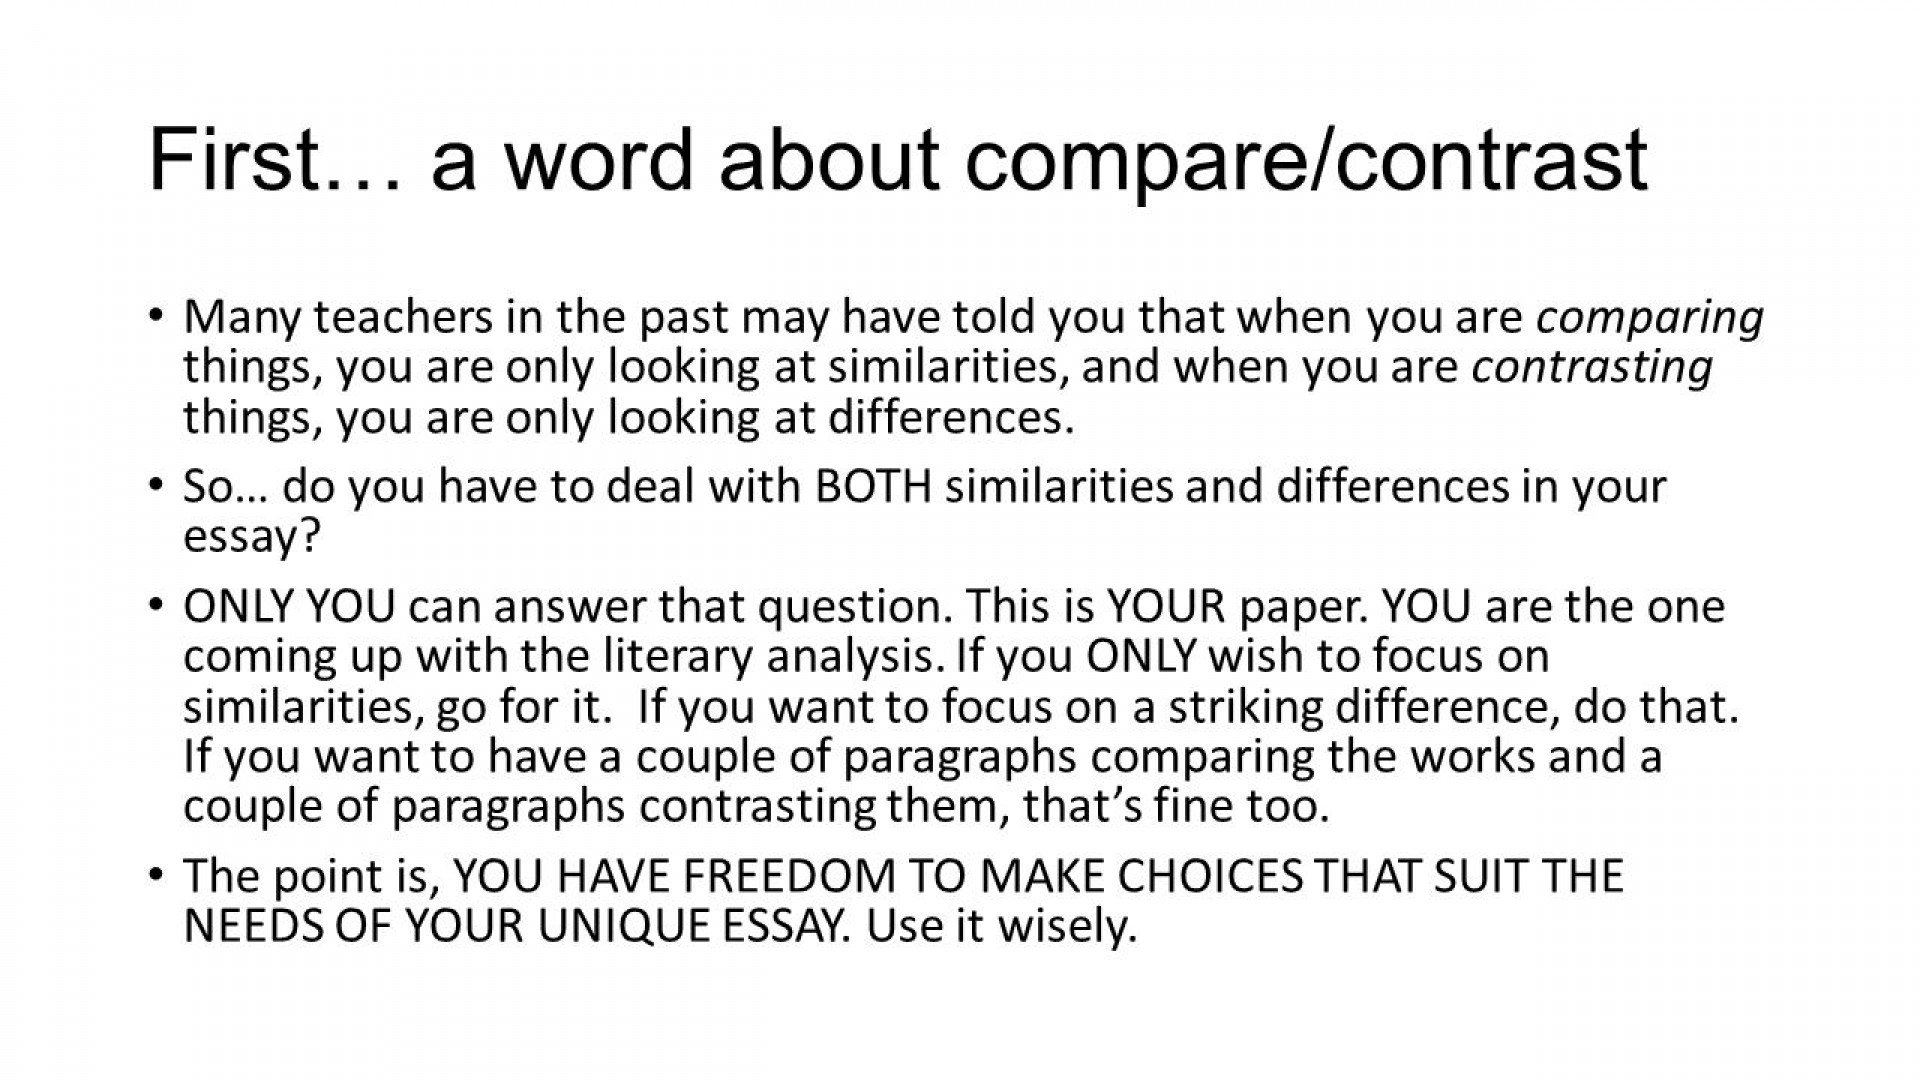 014 How To Write Compare And Contrast Essay Writing About Literature Ppt Powerpoint For Middle School Sl Download Free Presentation Persuasive Argumentative College Slideshare Striking A Good Introduction Essays 1920